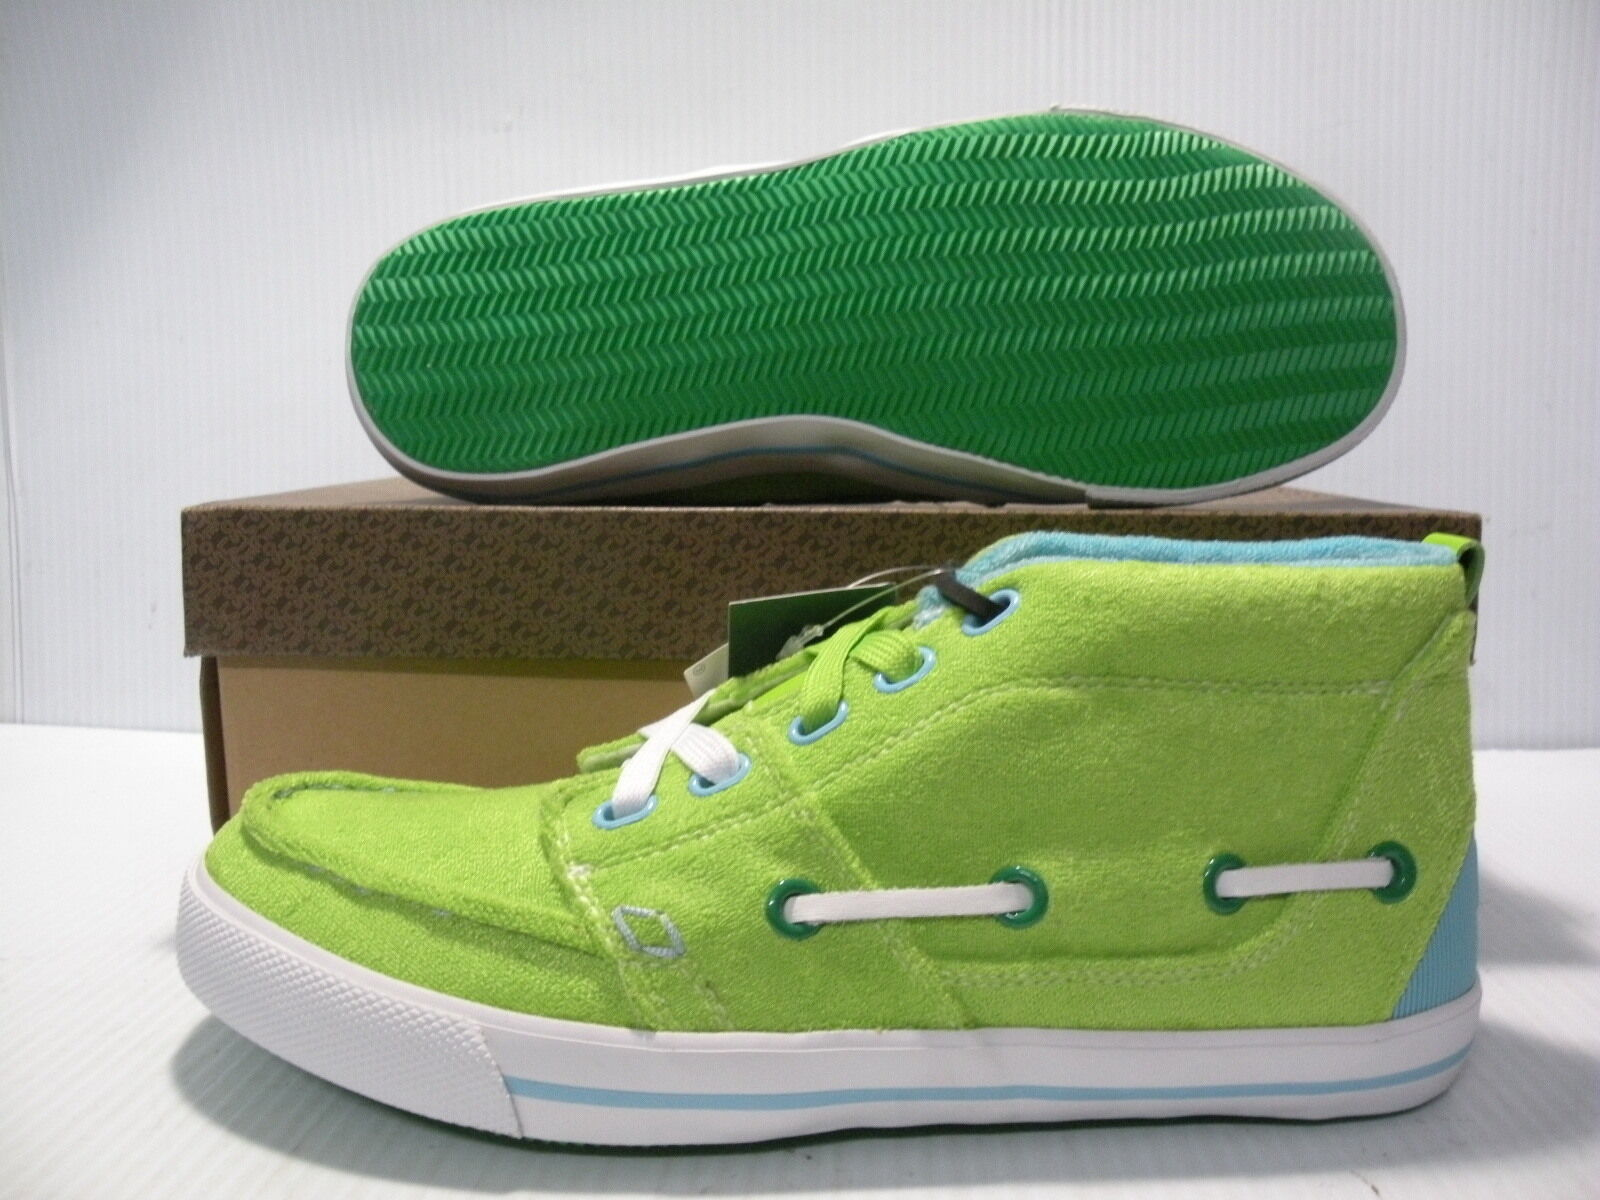 LACOSTE CABESTAN ATMOS 2 STM TEXT SNEAKERS Uomo Uomo Uomo SHOES 718STM20001B7 SIZE 10.5 NEW 09a200